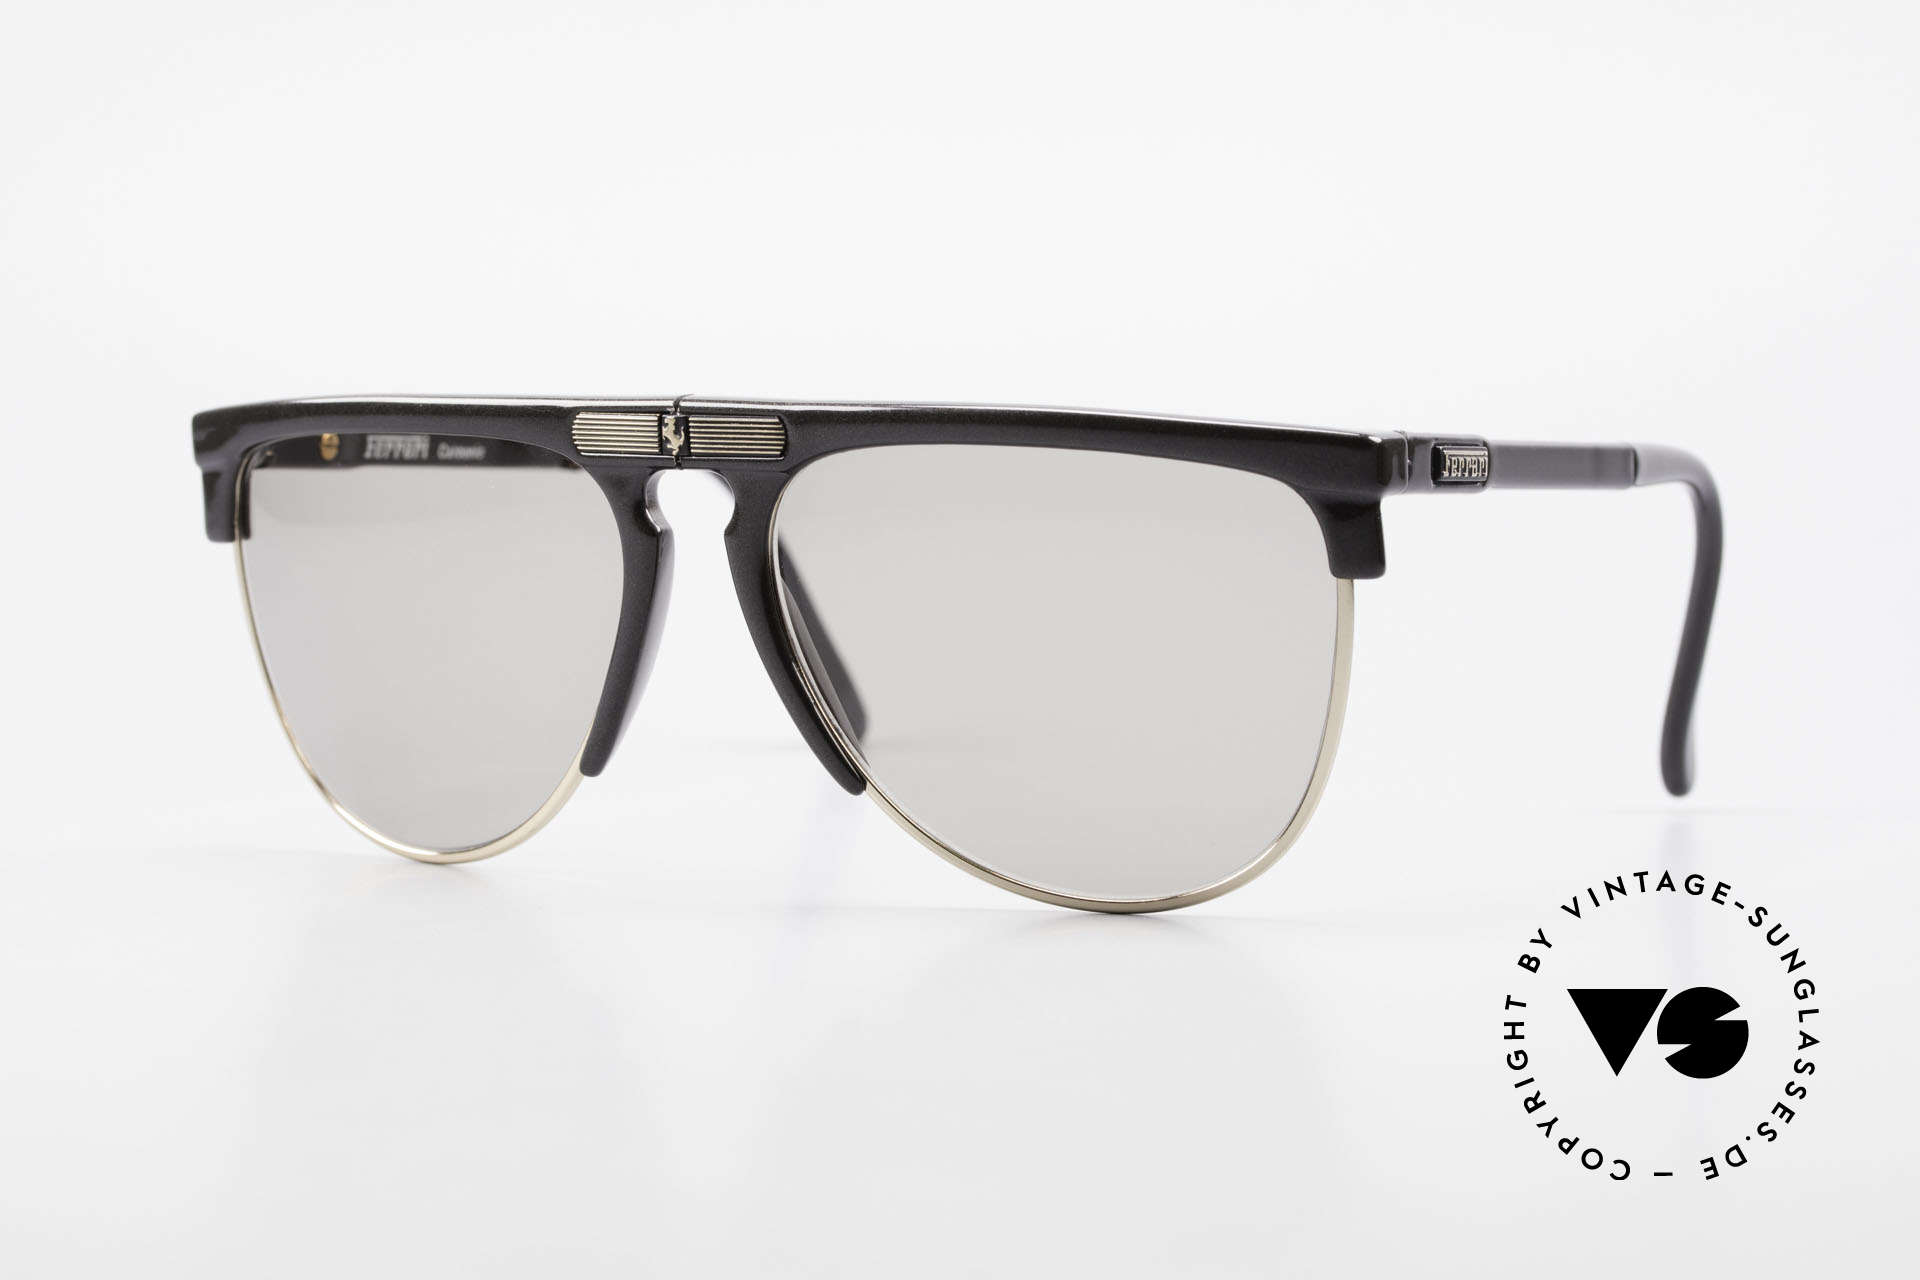 Ferrari F27/S Carbonio Folding Shades 90's, luxury folding sunglasses by Ferrari from the 90's, Made for Men